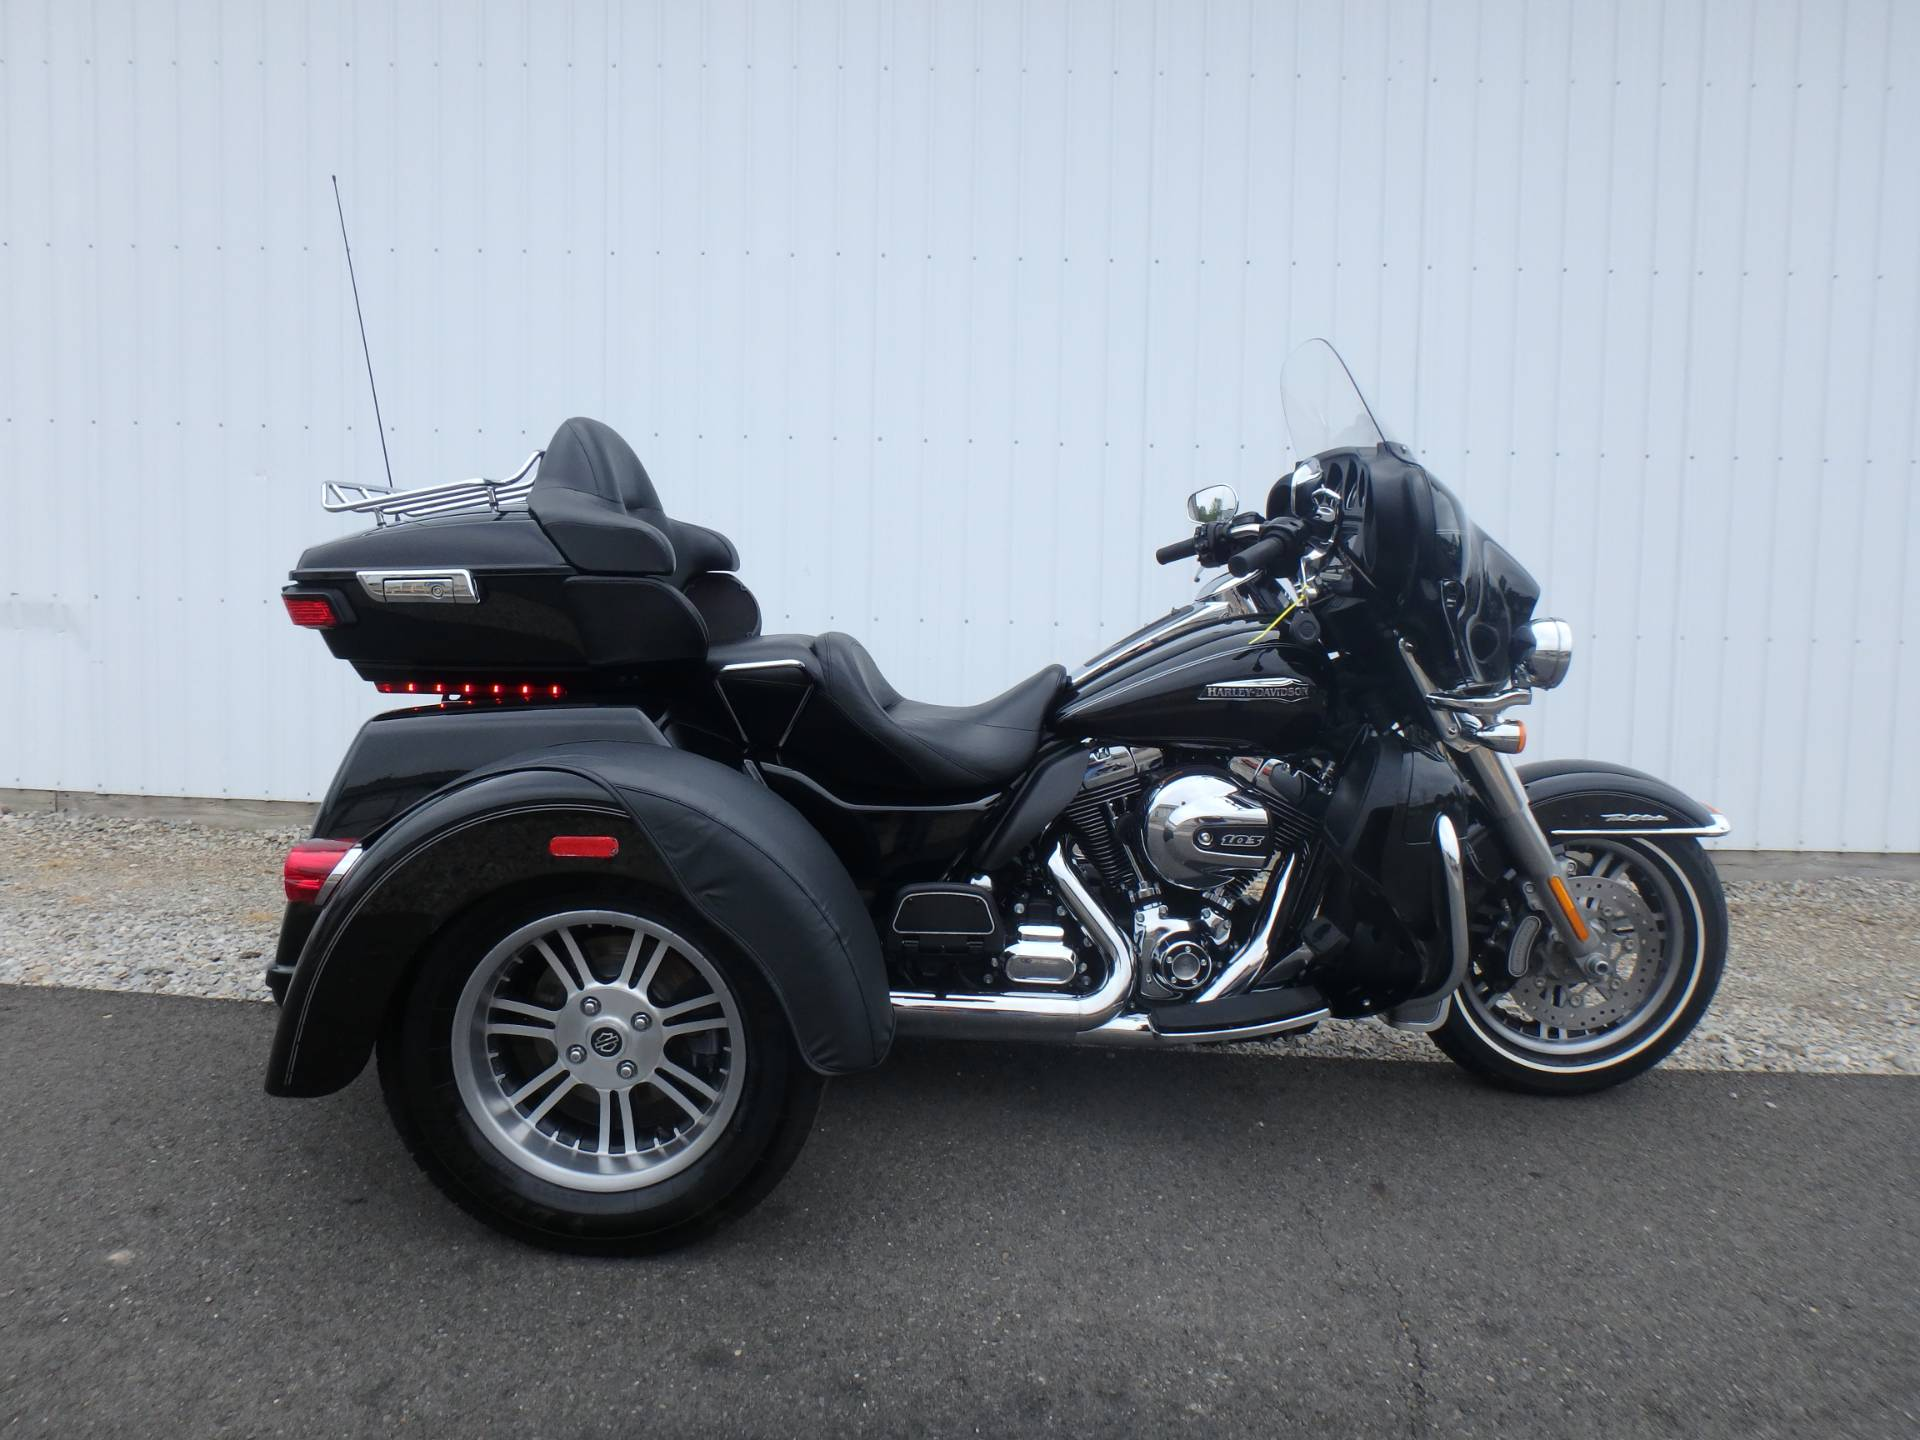 2015 Harley-Davidson Tri Glide Ultra for sale 674